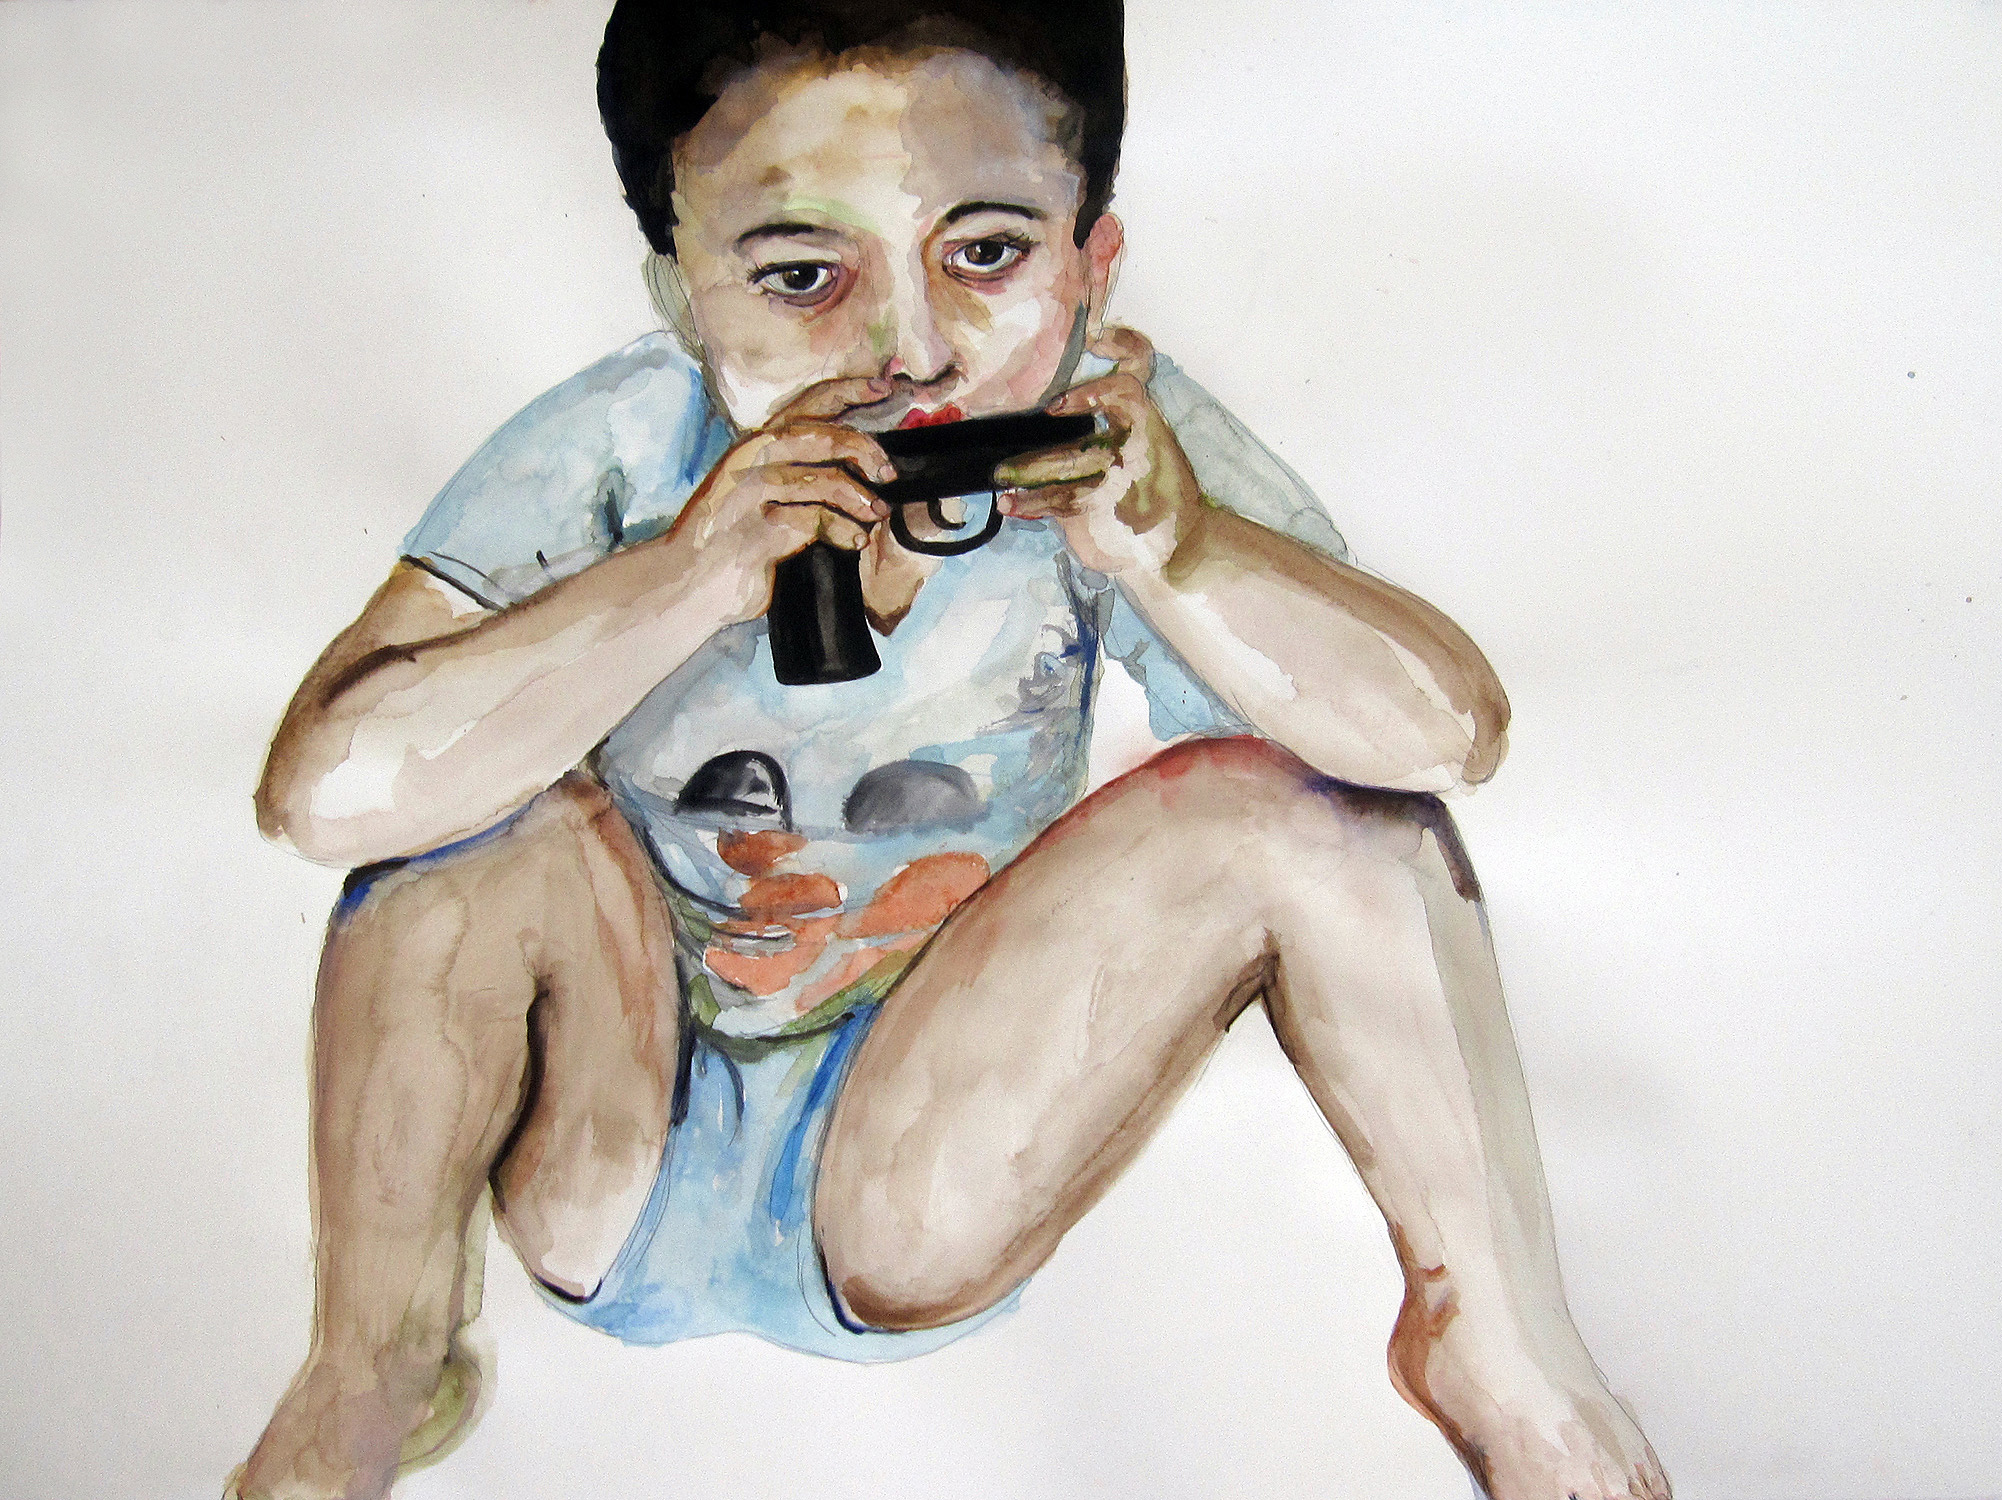 Boy Squatting, 2010, Graphite and watercolor on paper. 22 x 30 in.